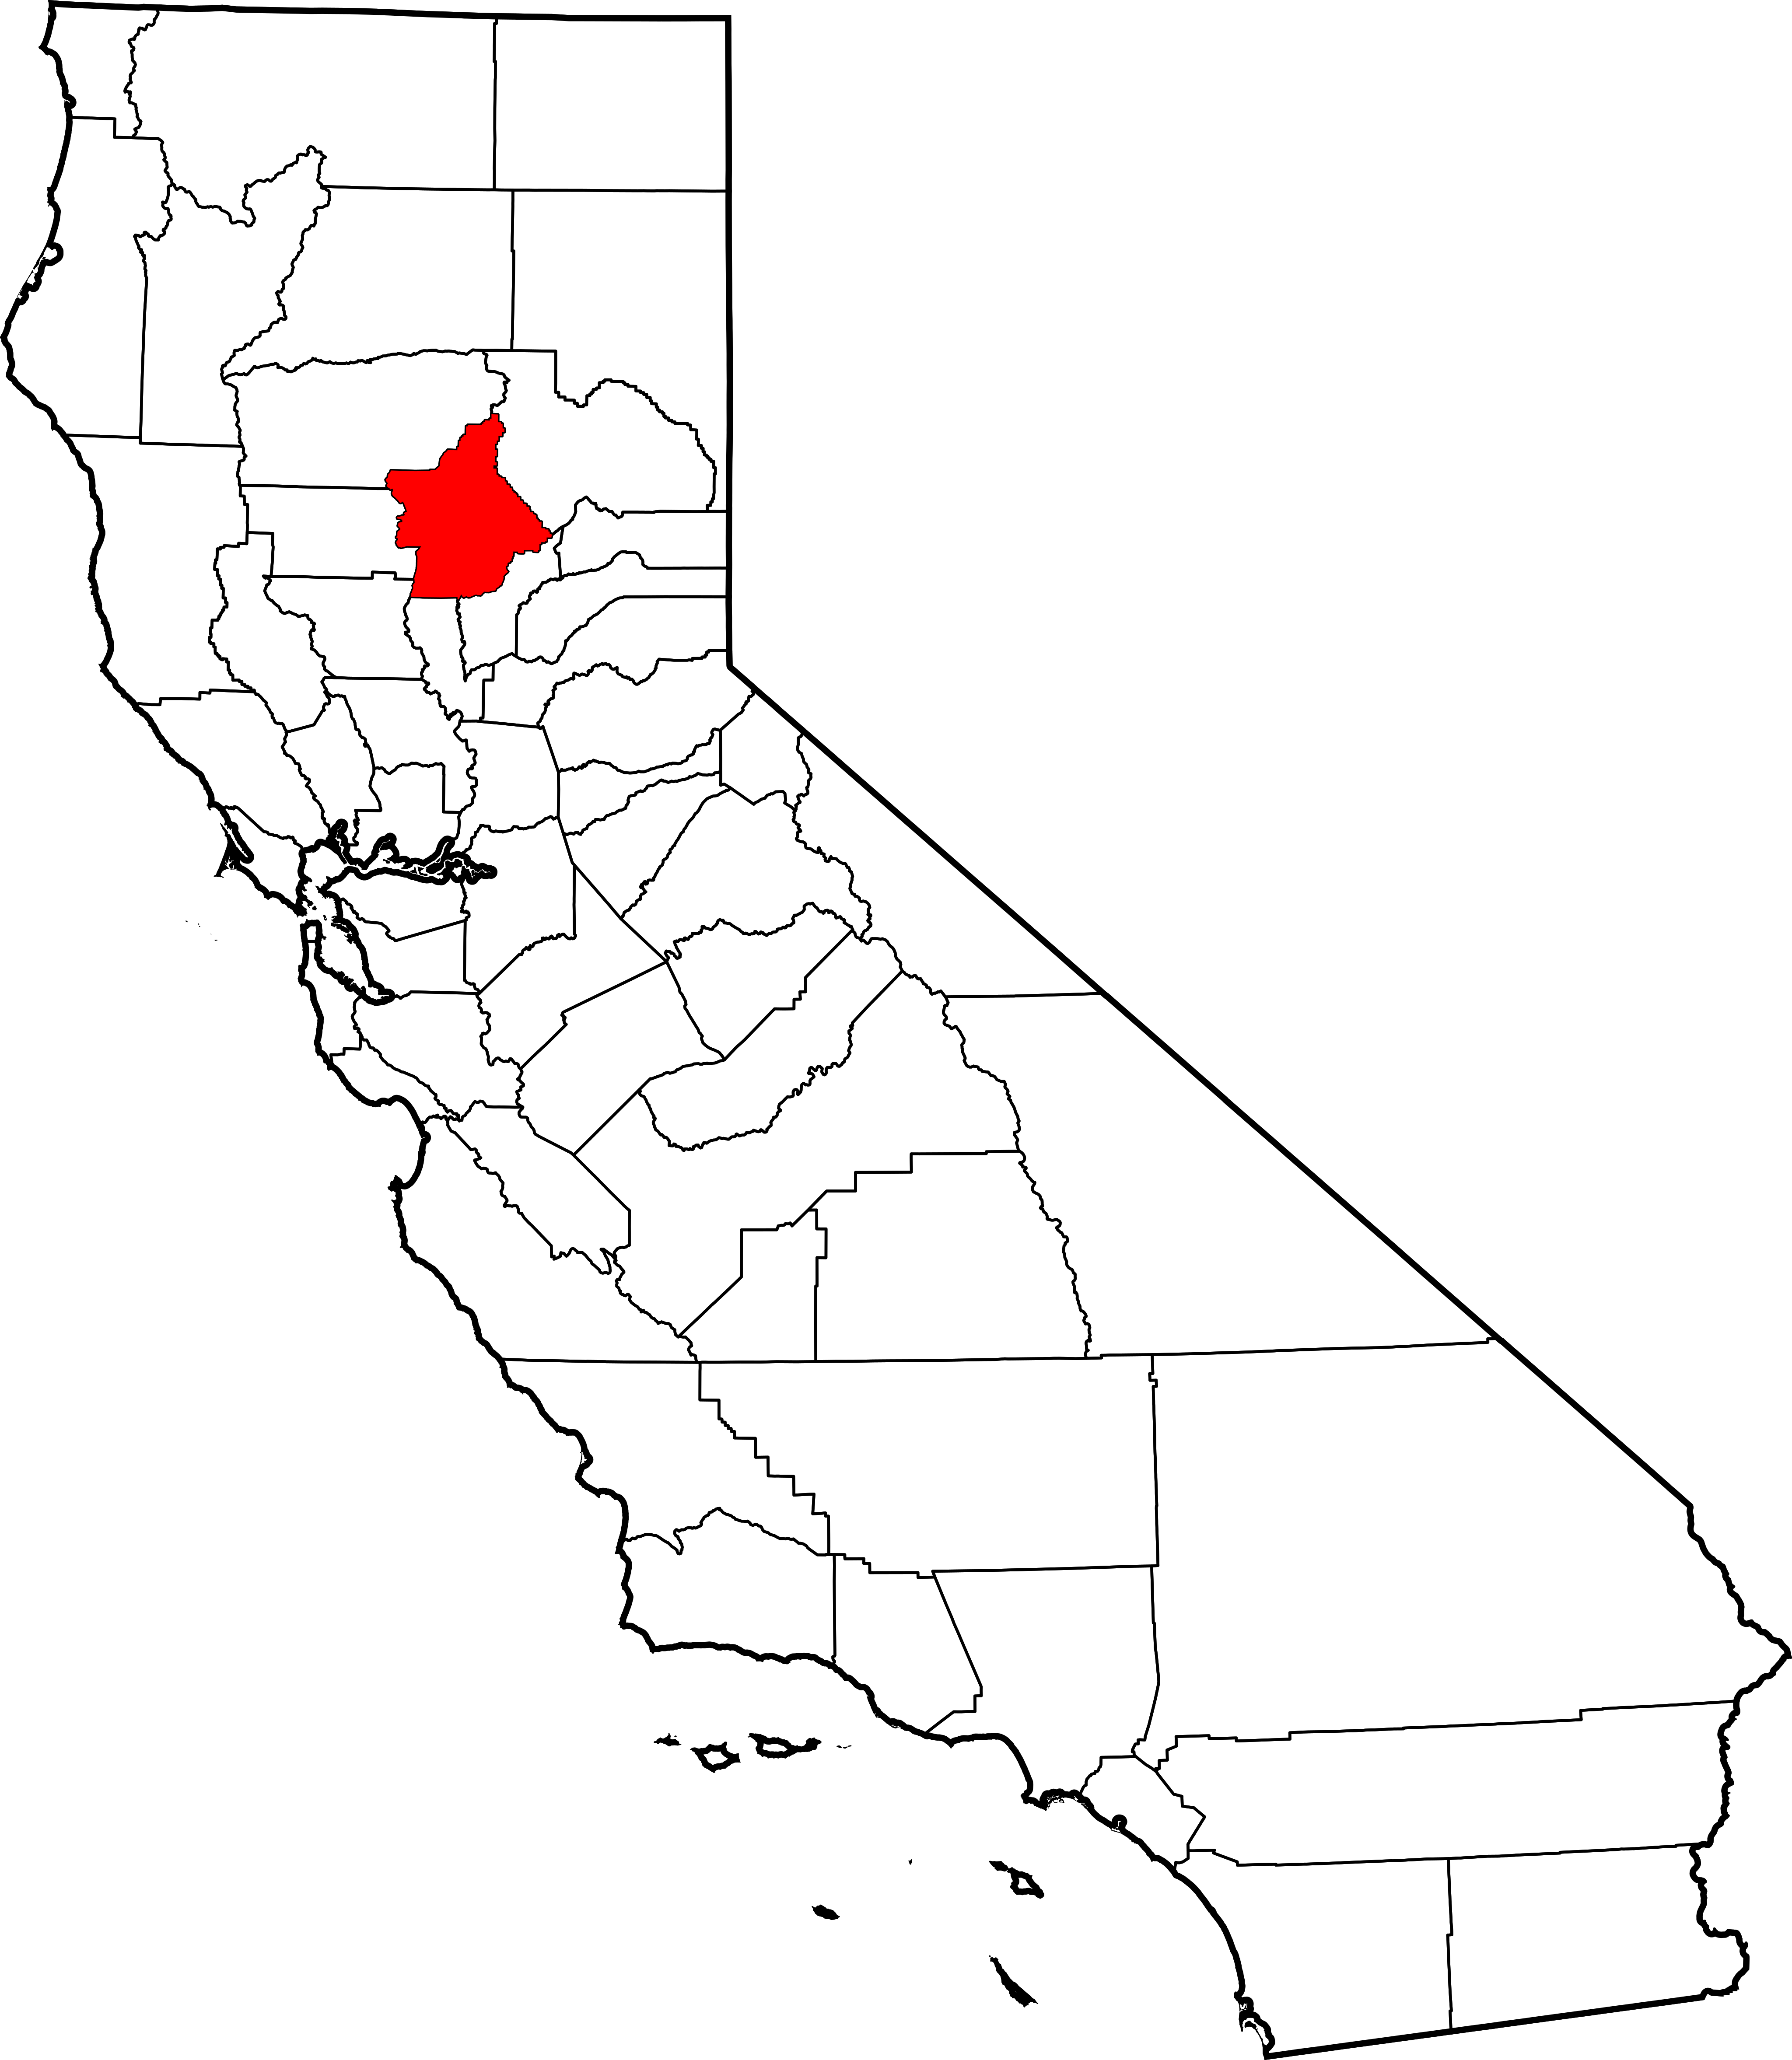 California map outline png. File of highlighting butte